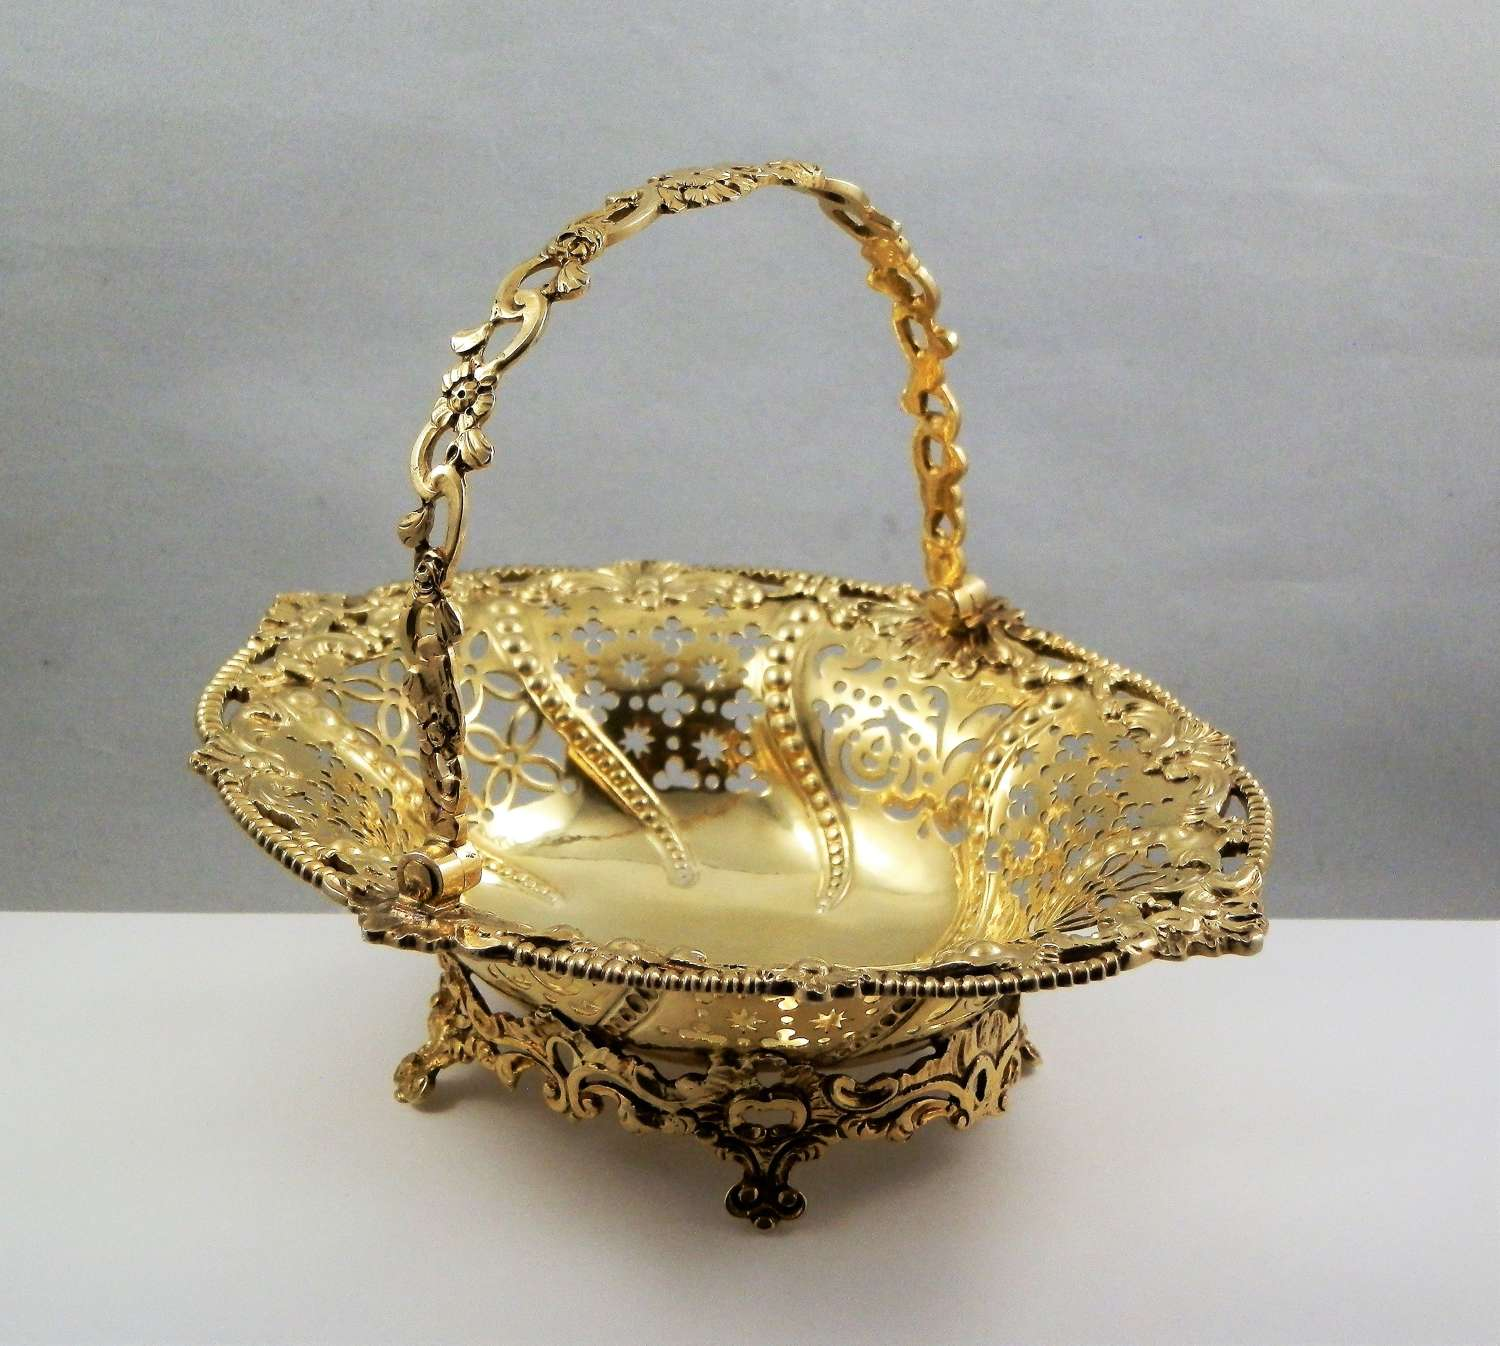 George III silver gilt basket, Edward Aldridge, London 1764